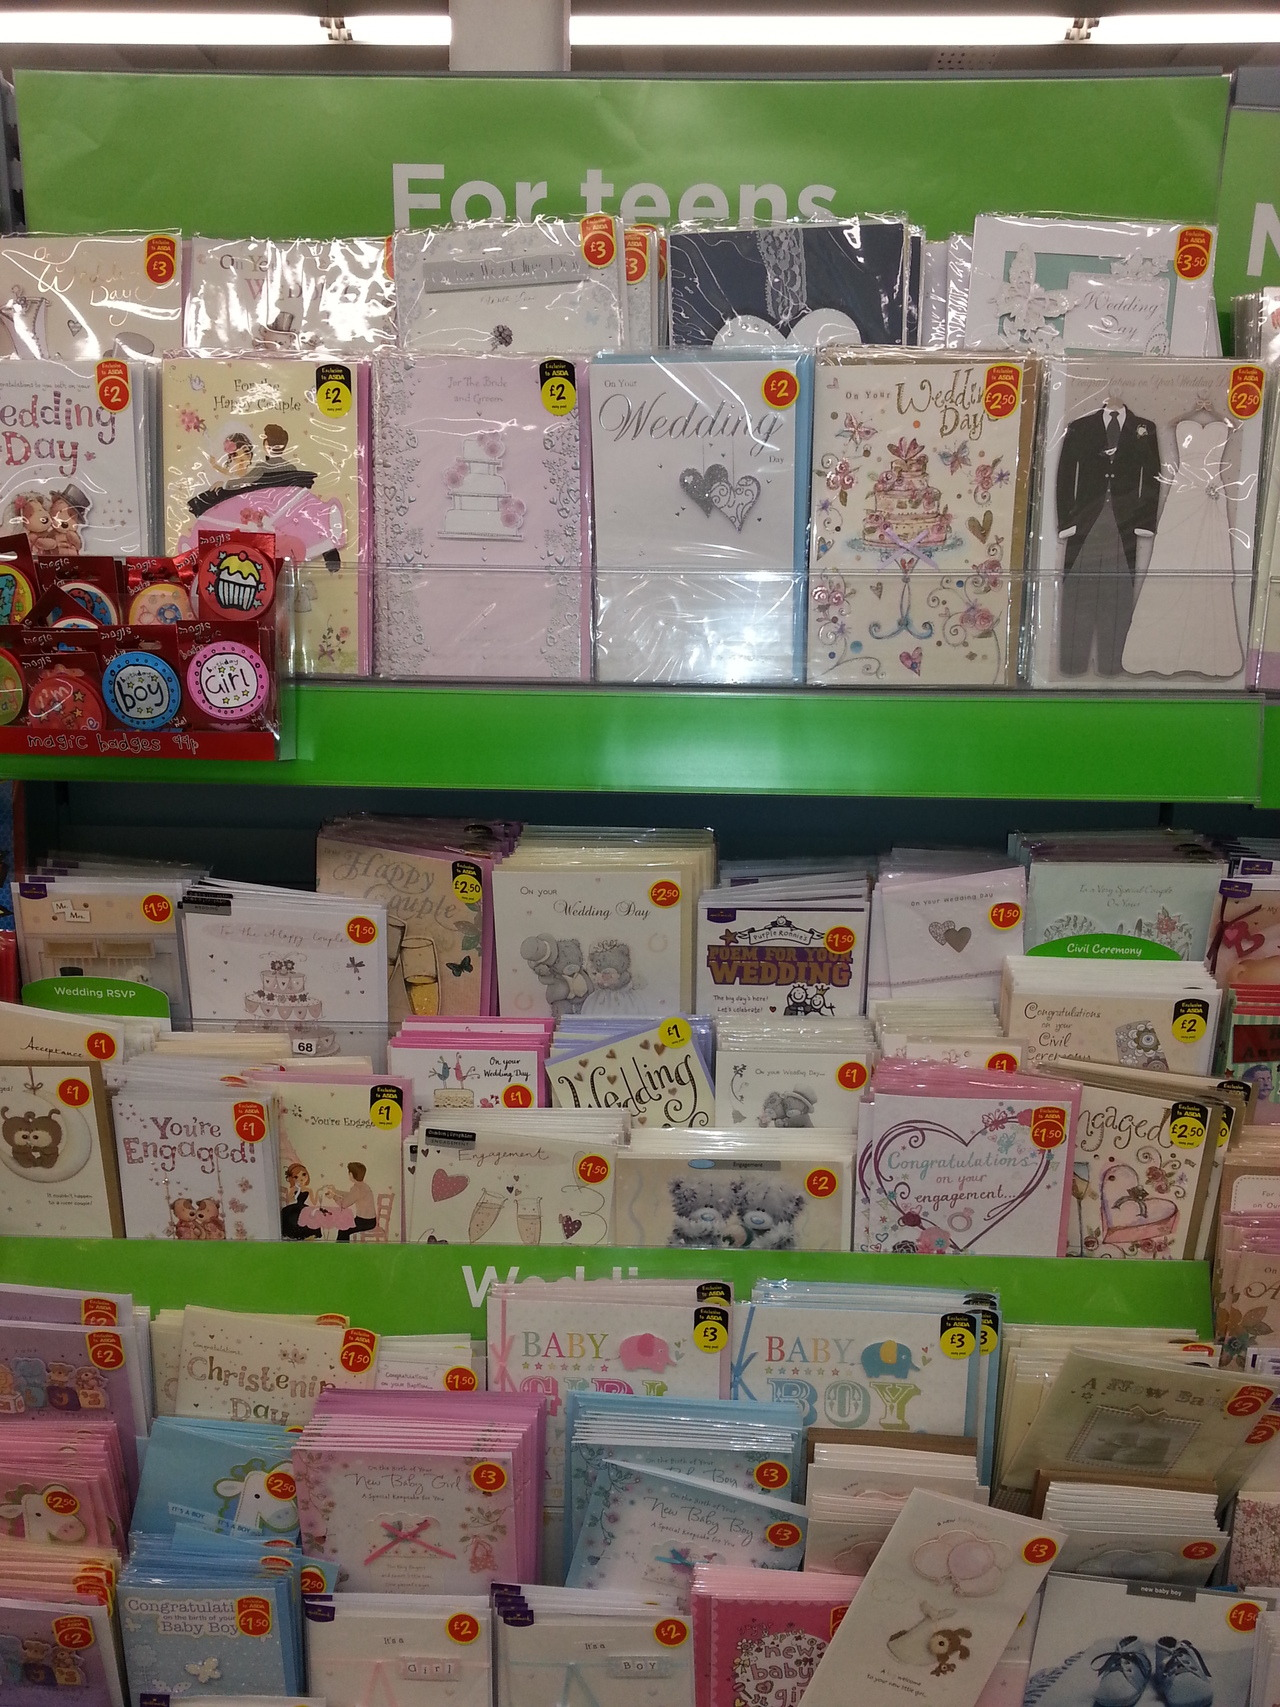 "youknowyourebritishwhen:  All the cards in the ""For teens"" section are for weddings and expecting babies."